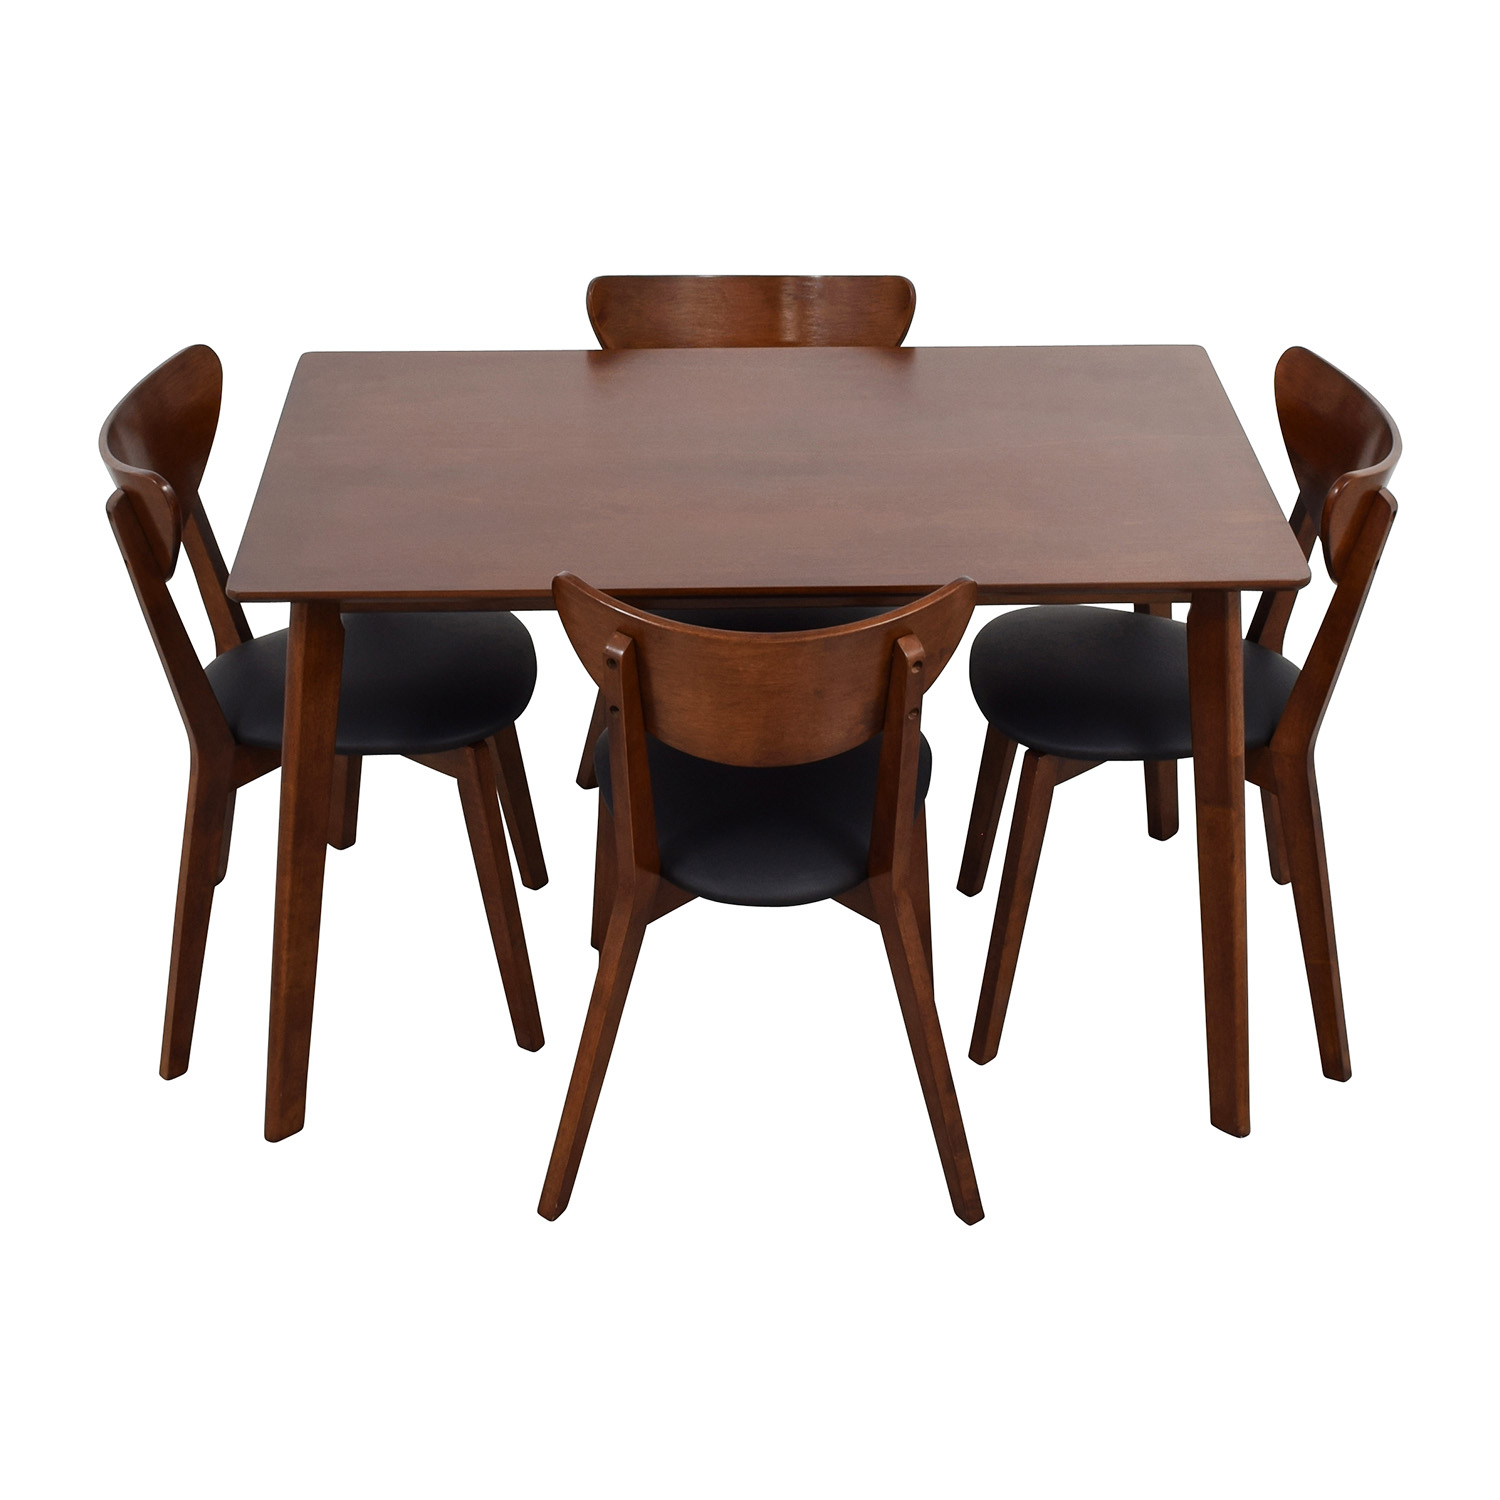 Secondhand Chairs And Tables: Wholesale Interiors Brown Dining Table Set With